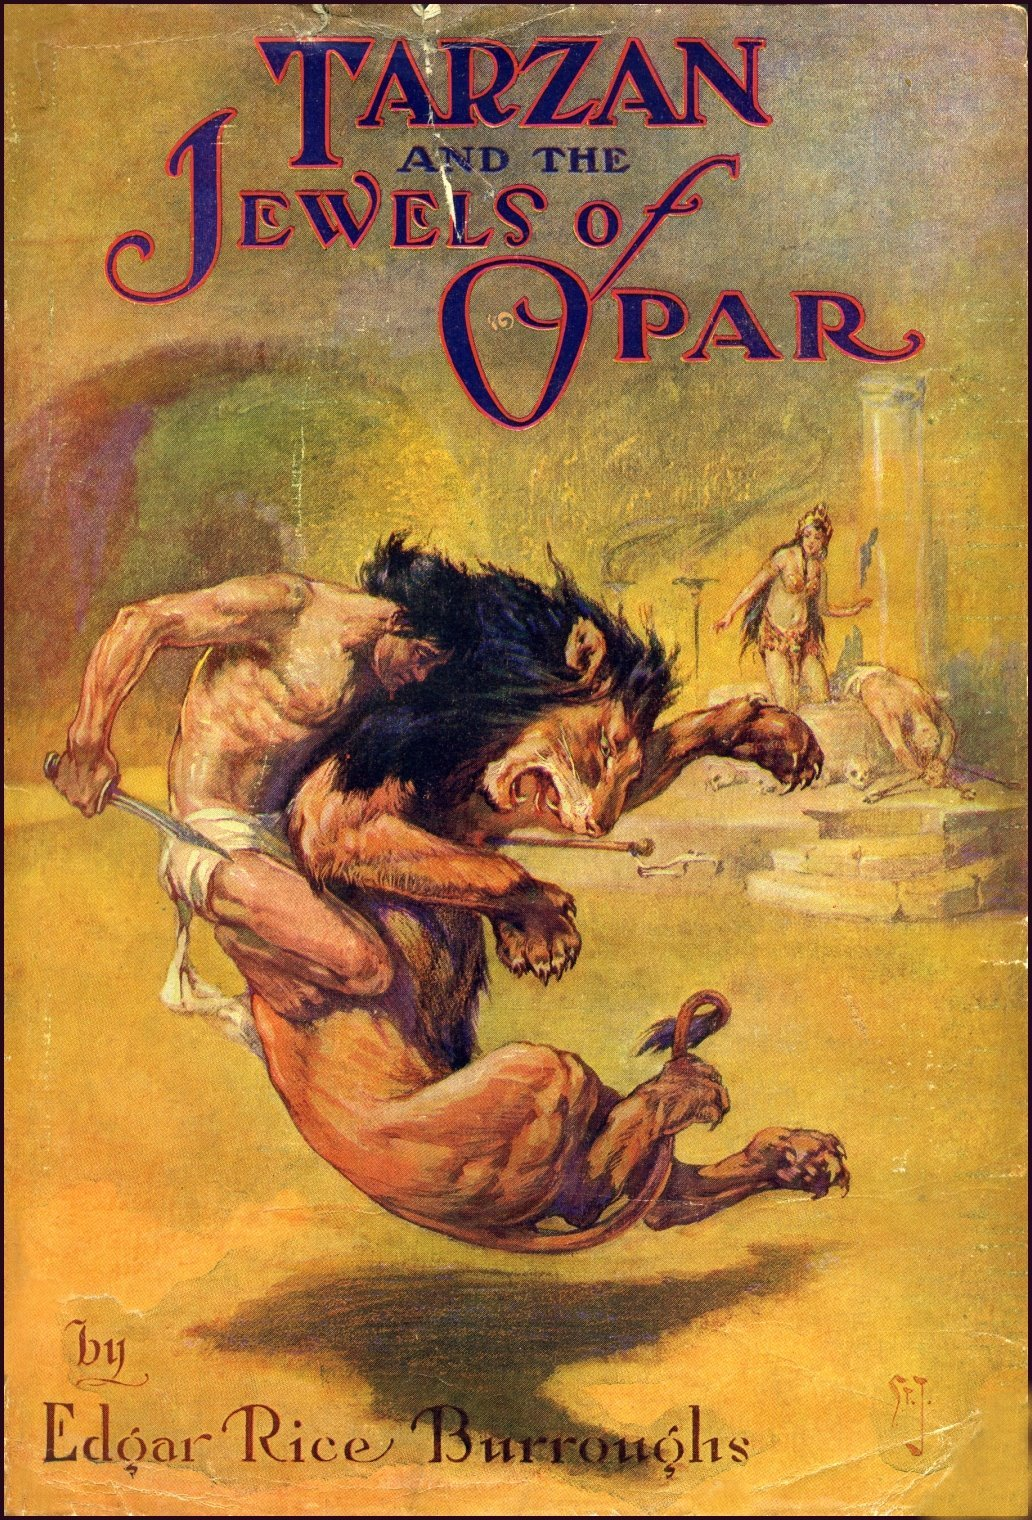 Tarzan and the Jewels of Opar (lost unfinished film